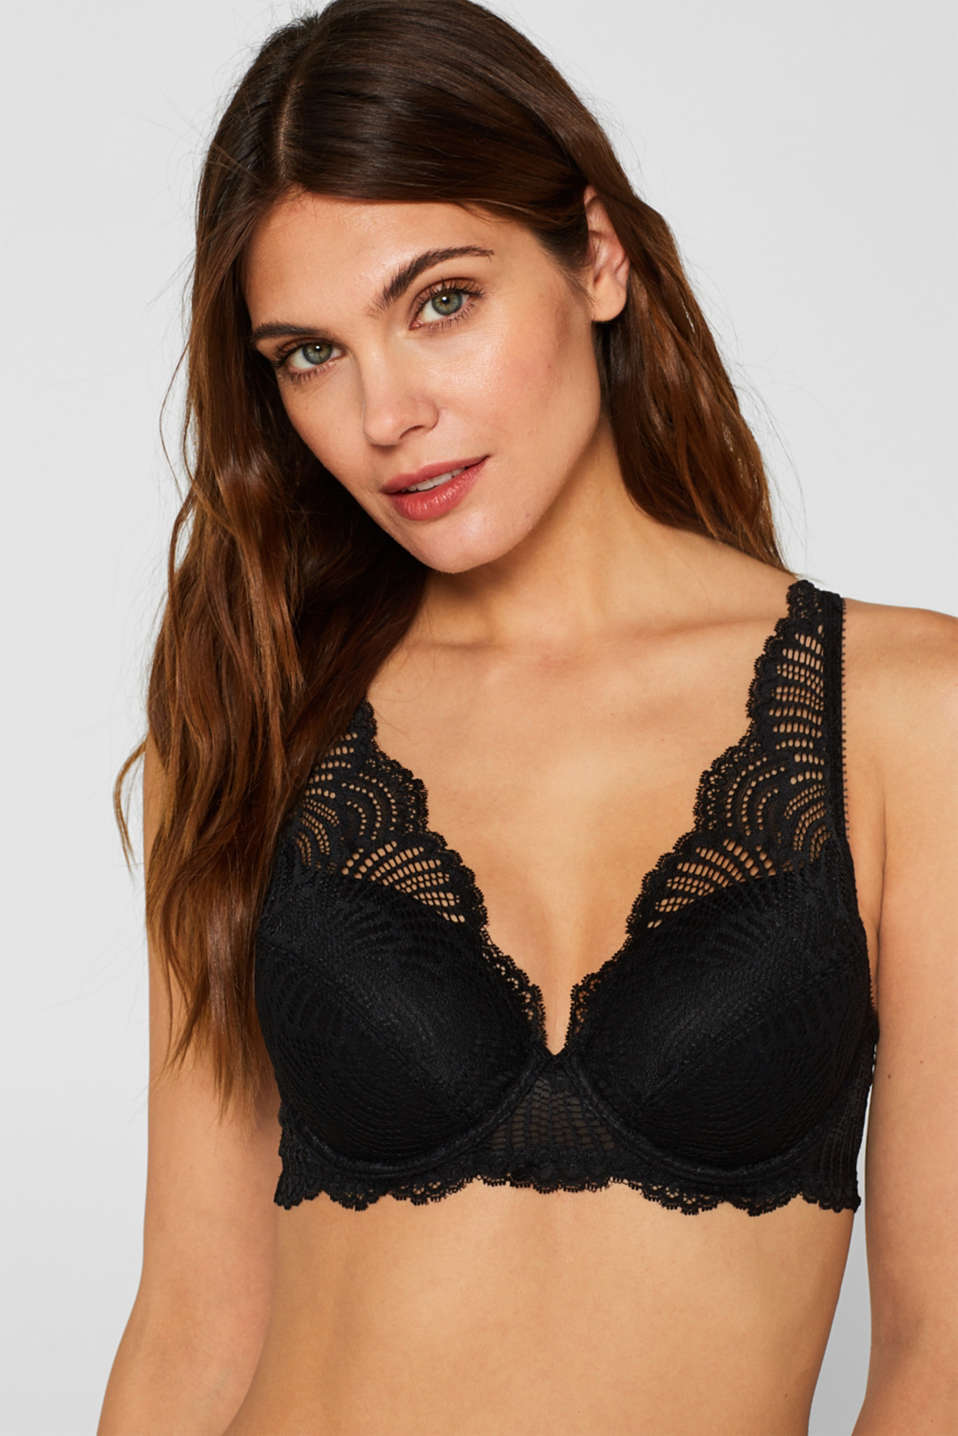 Esprit - Padded underwire bra made of decorative lace